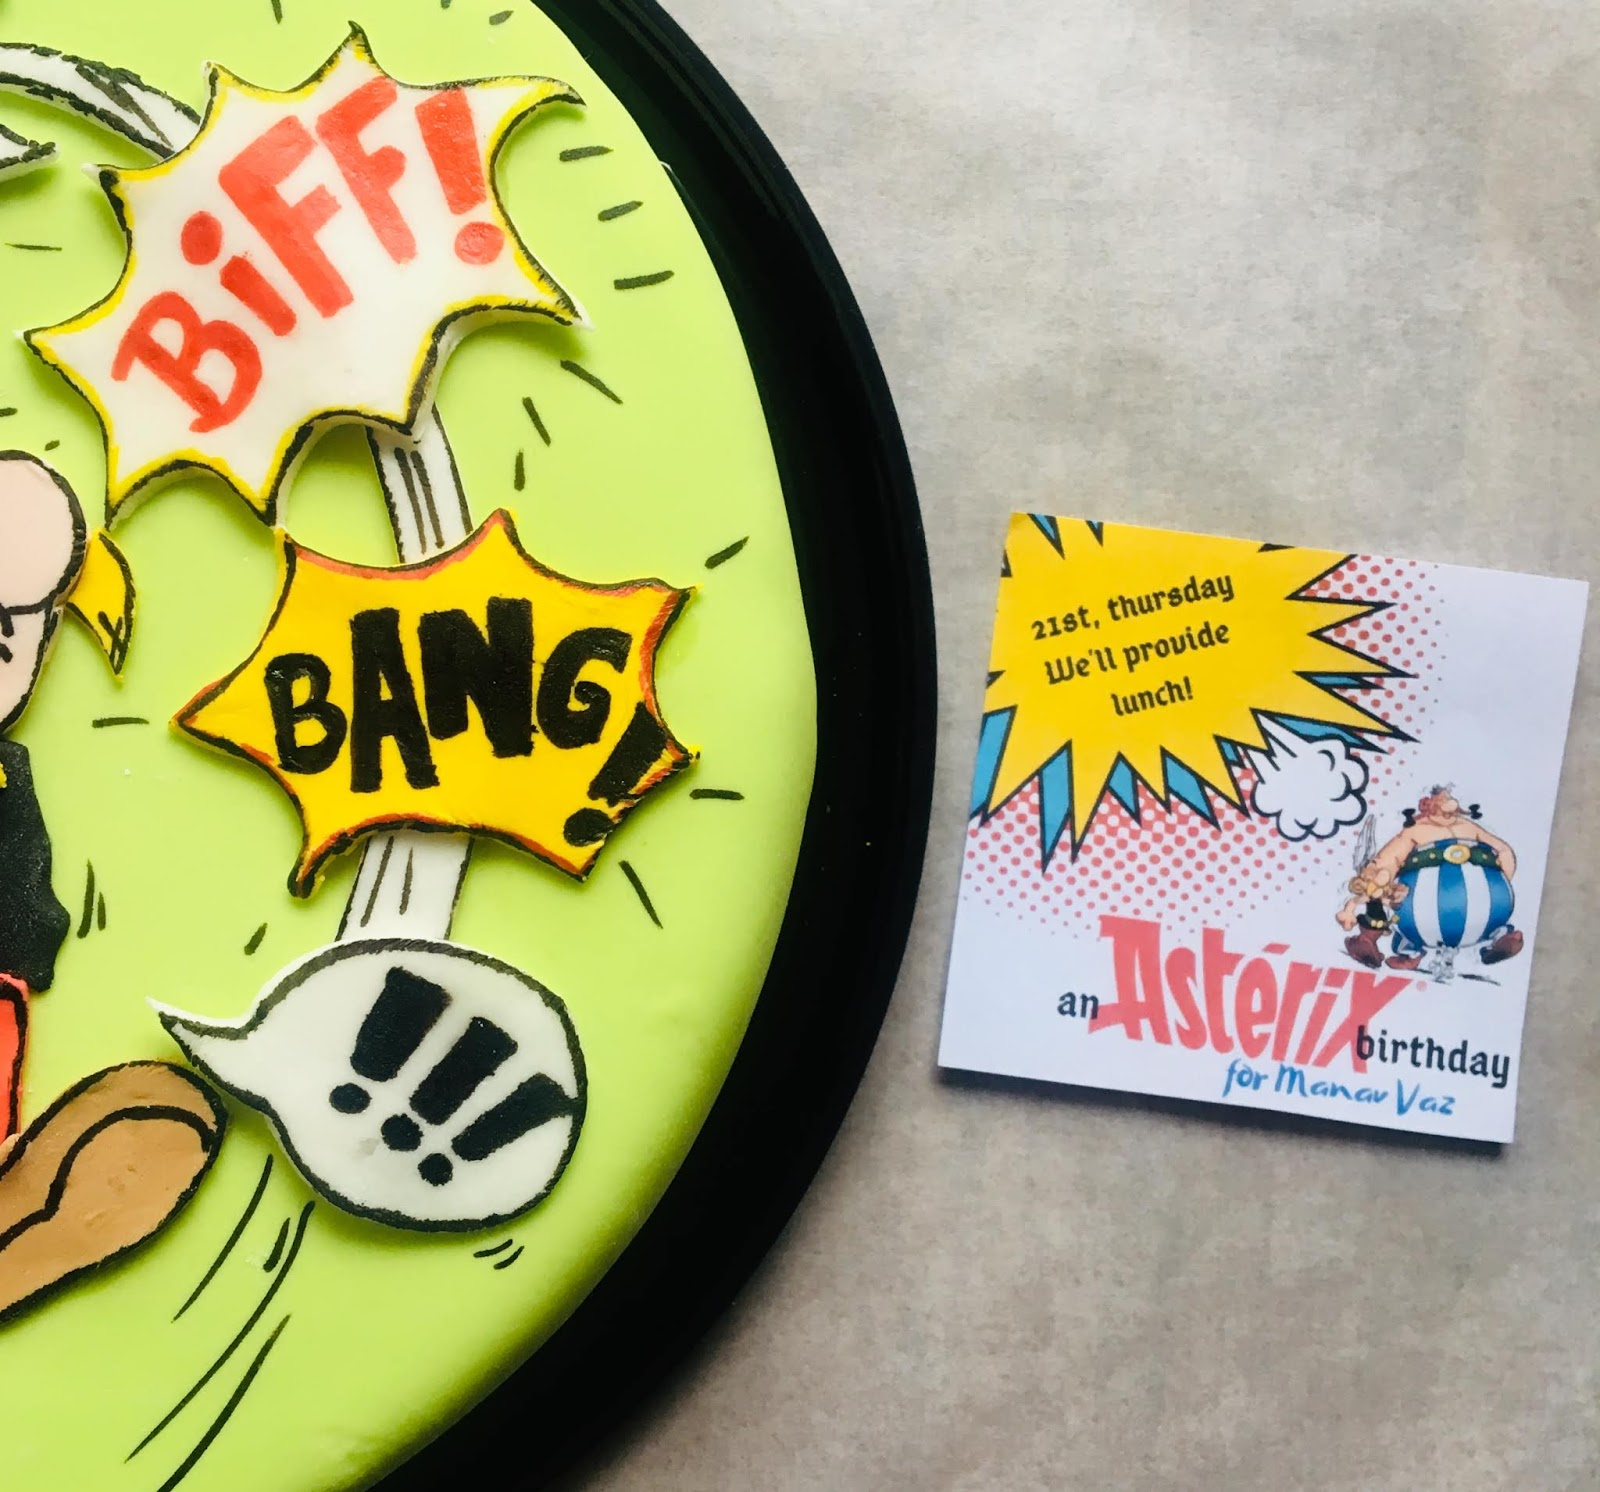 Asterix Themed Birthday Cake: DIY by Practical Mom